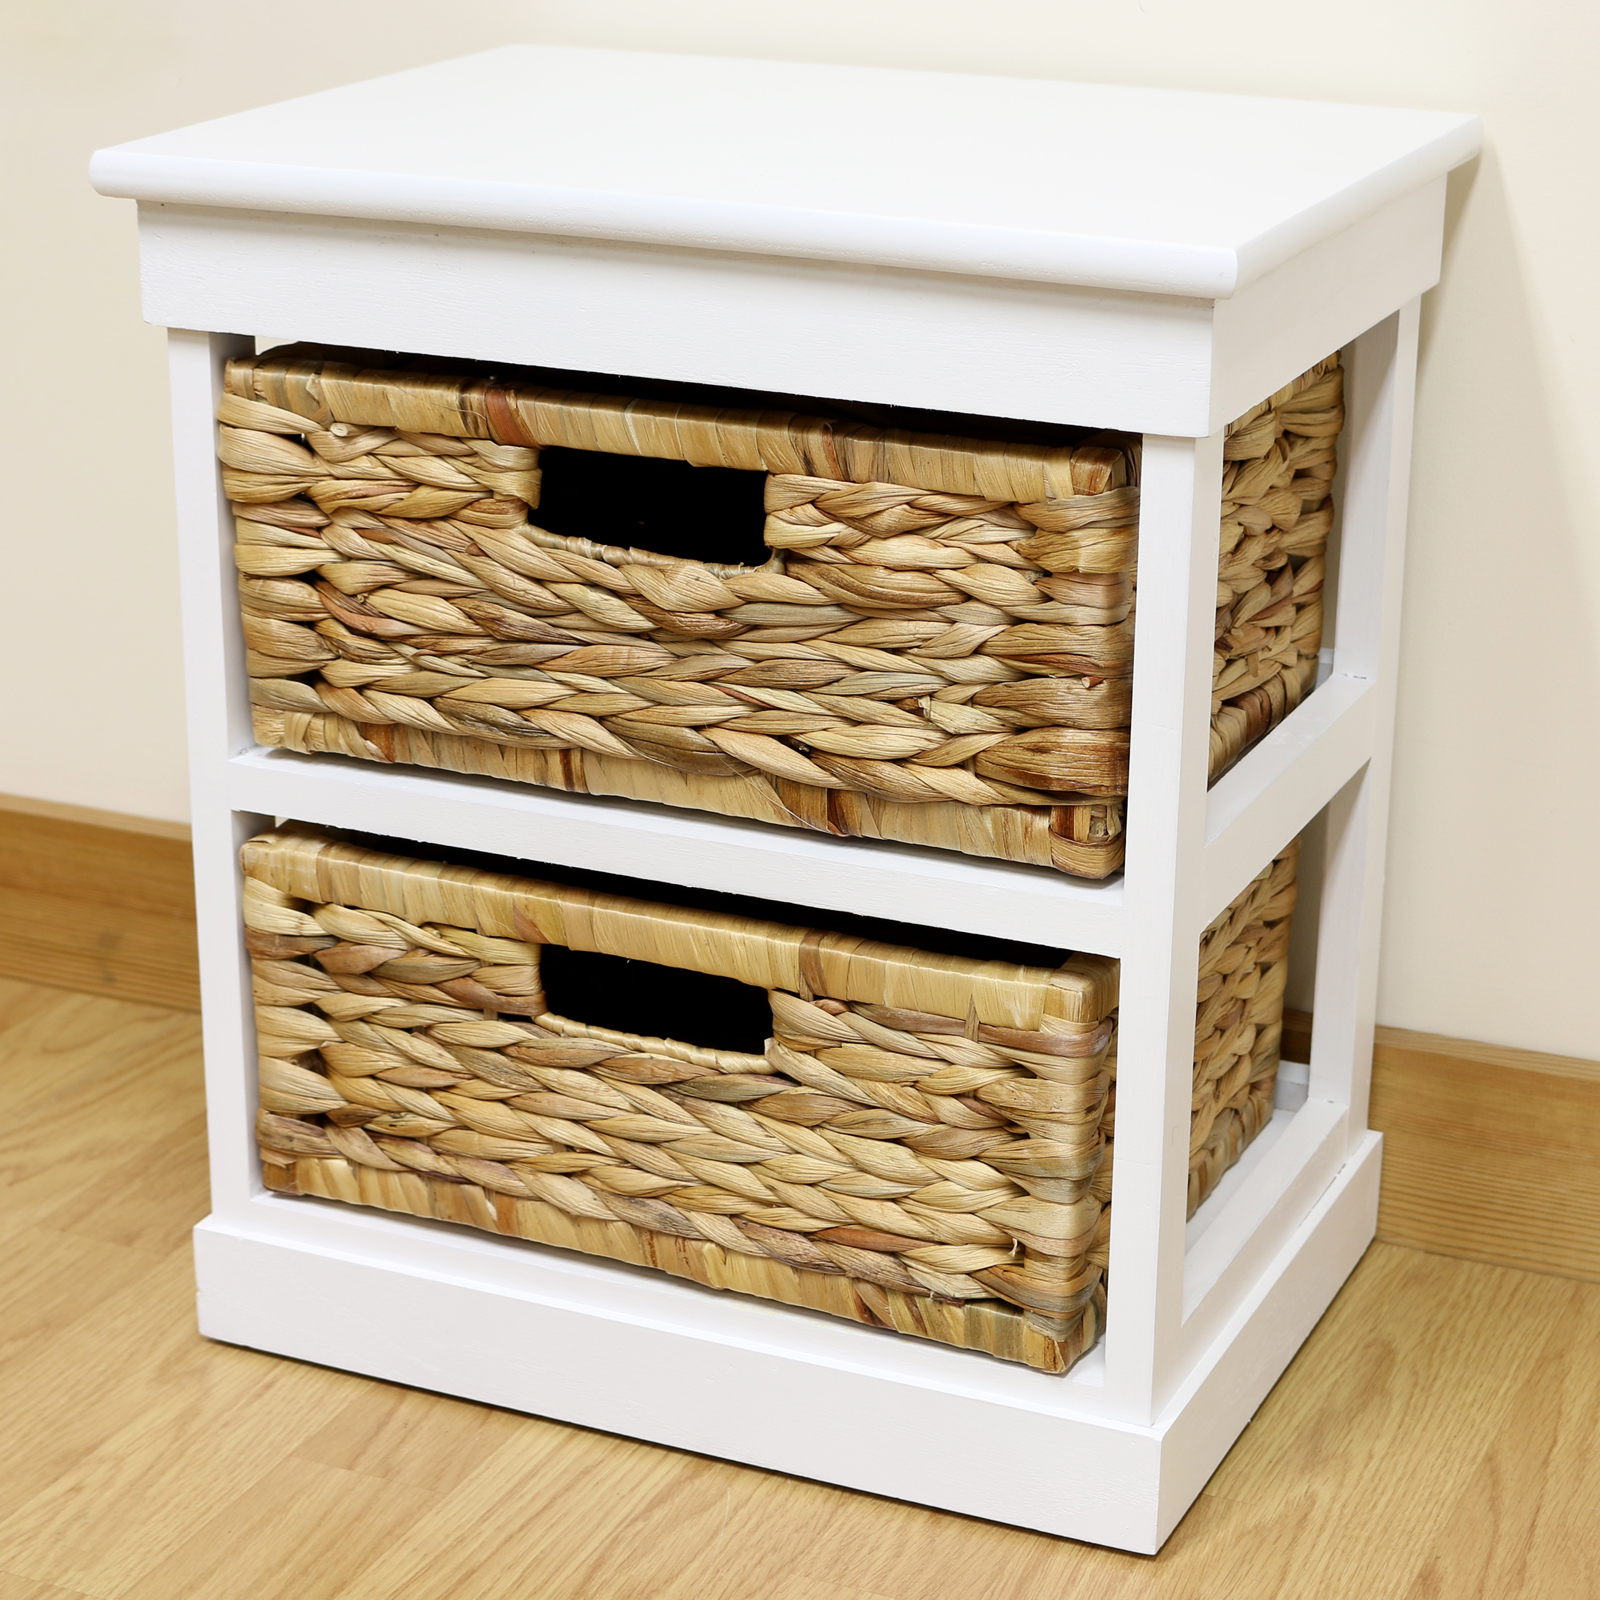 White 2 Drawer Basket Bedside Cabinet Home Storage Unit Lounge Bathroom Seagrass Ebay